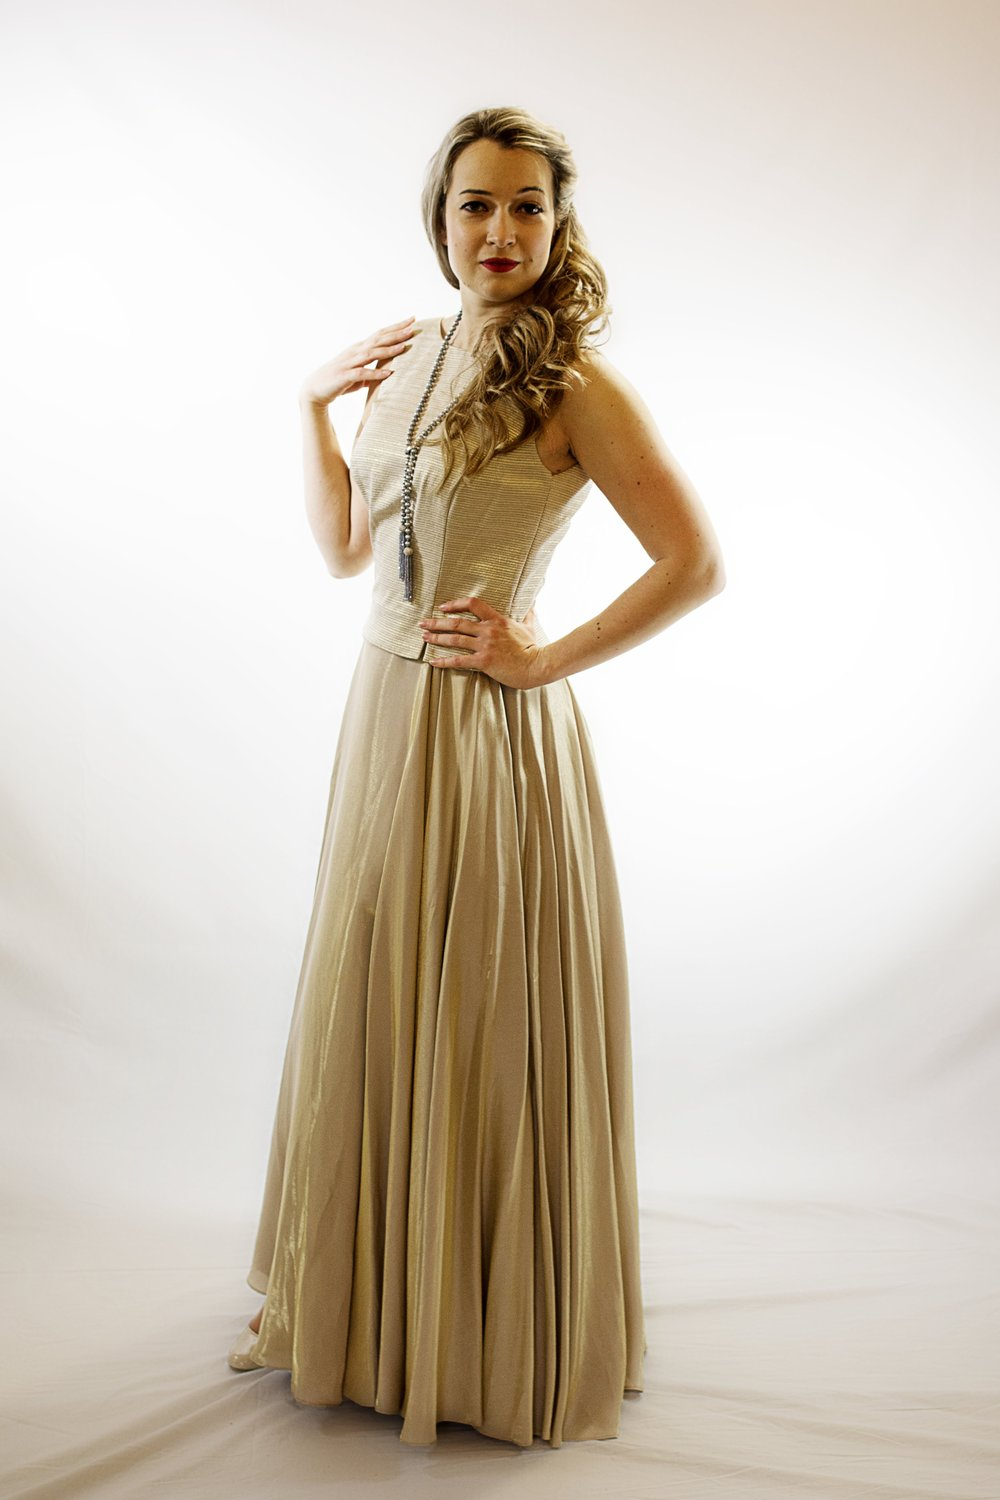 Natasha day (soprano) wears item 164: gold evening gown